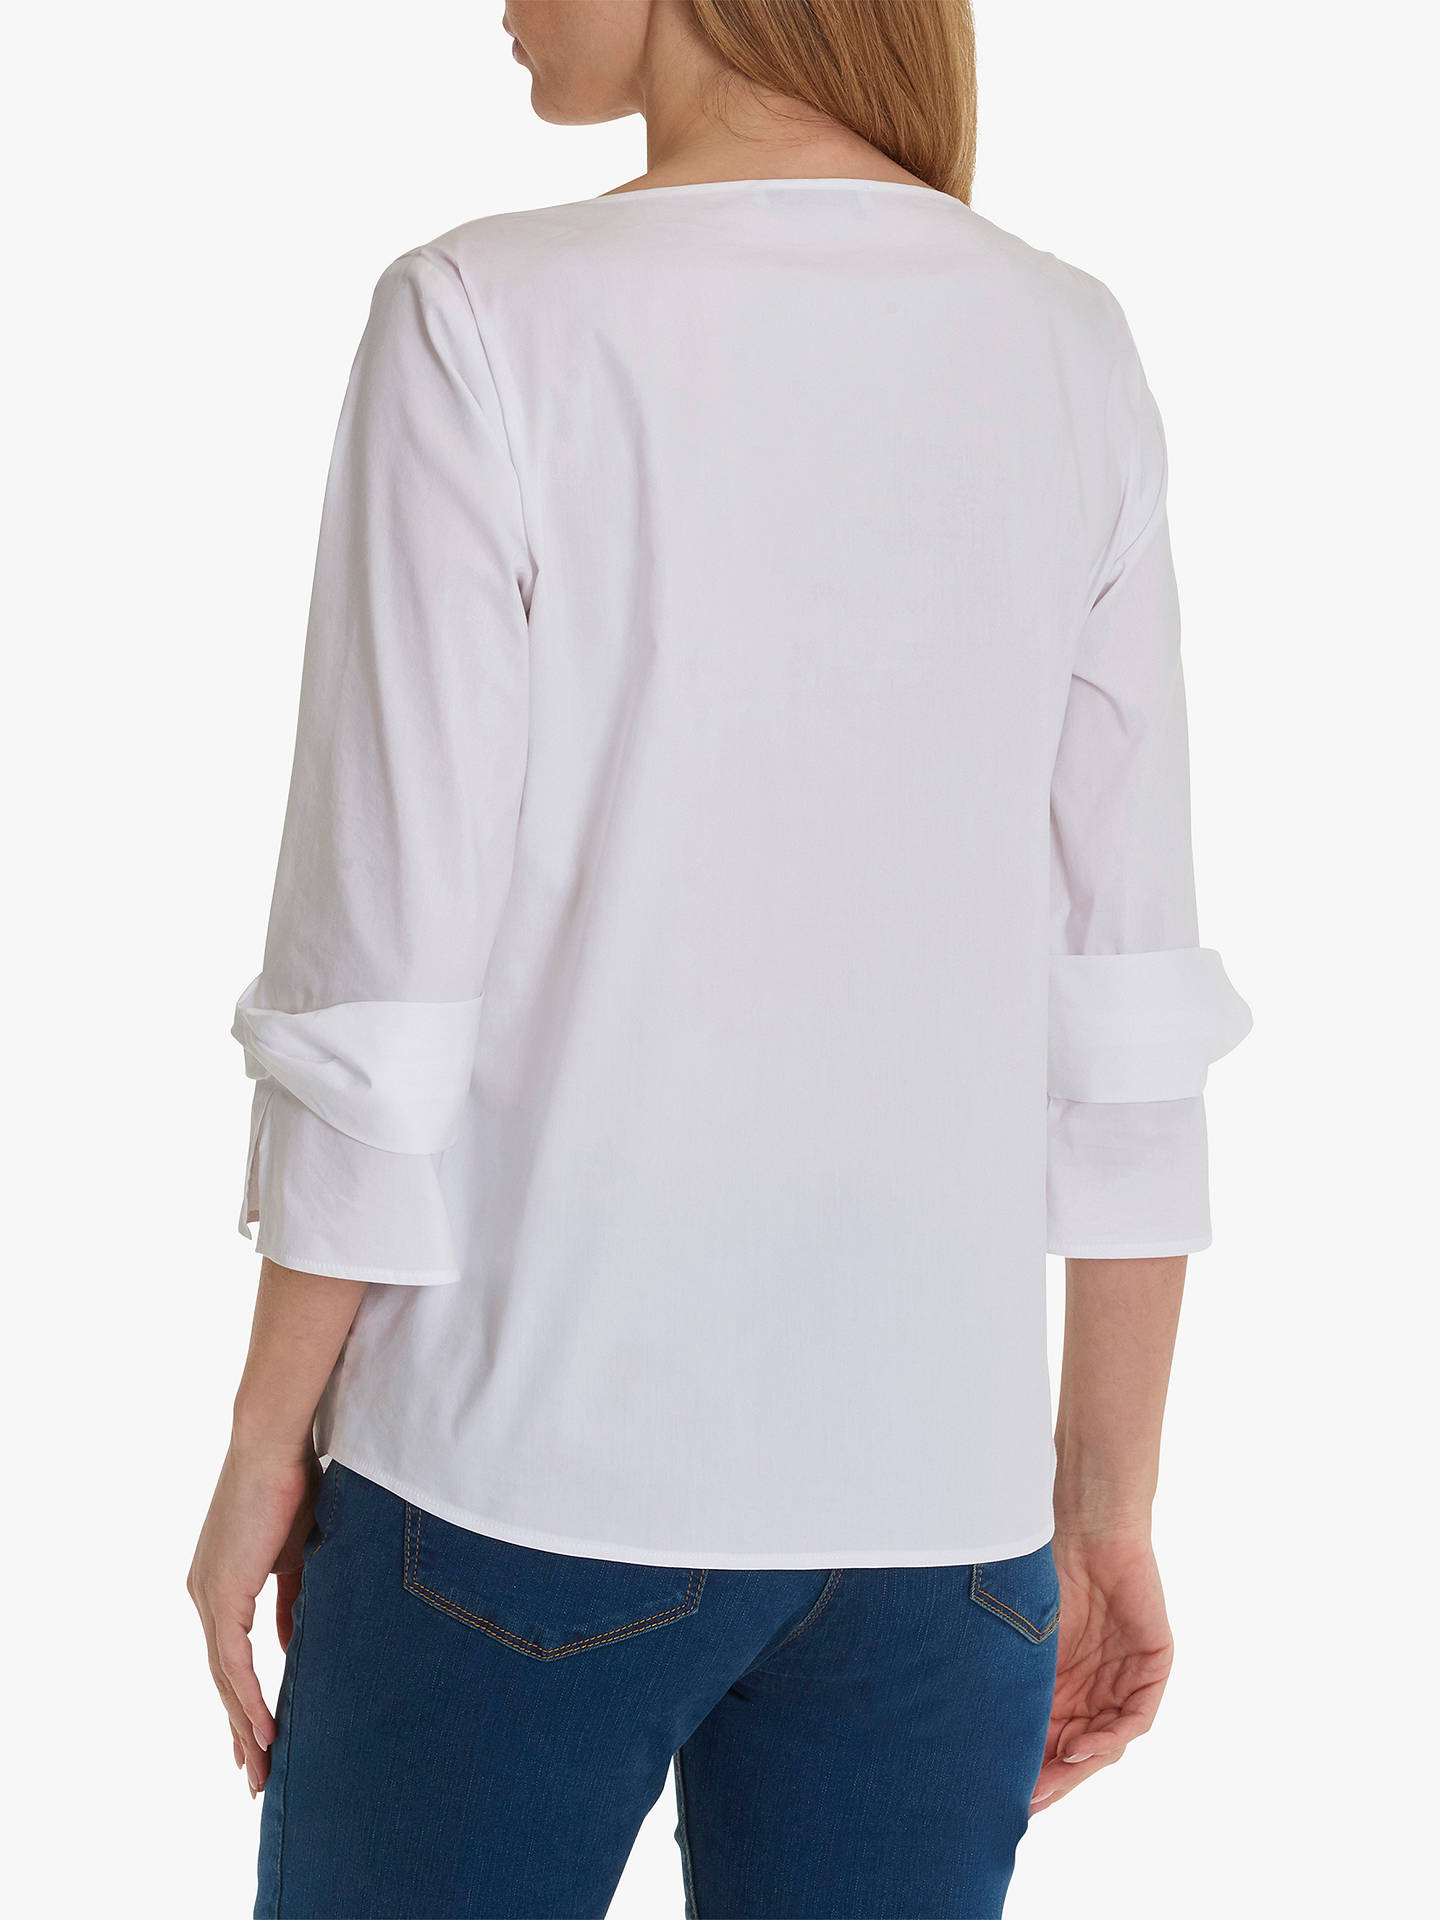 Buy Betty Barclay Knot Statement Sleeve V-Neck Blouse, Bright White, 10 Online at johnlewis.com